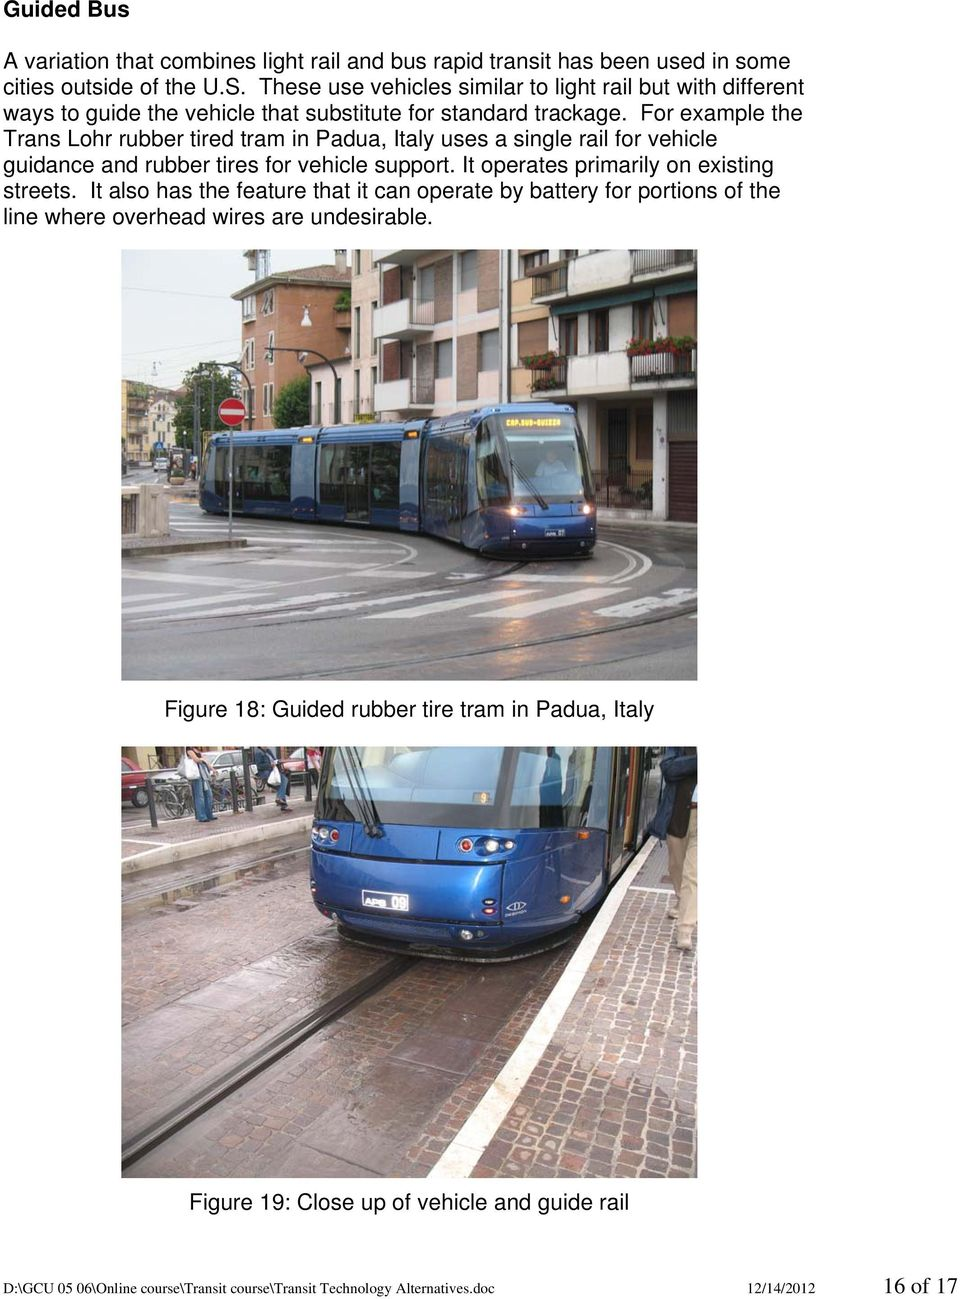 For example the Trans Lohr rubber tired tram in Padua, Italy uses a single rail for vehicle guidance and rubber tires for vehicle support. It operates primarily on existing streets.